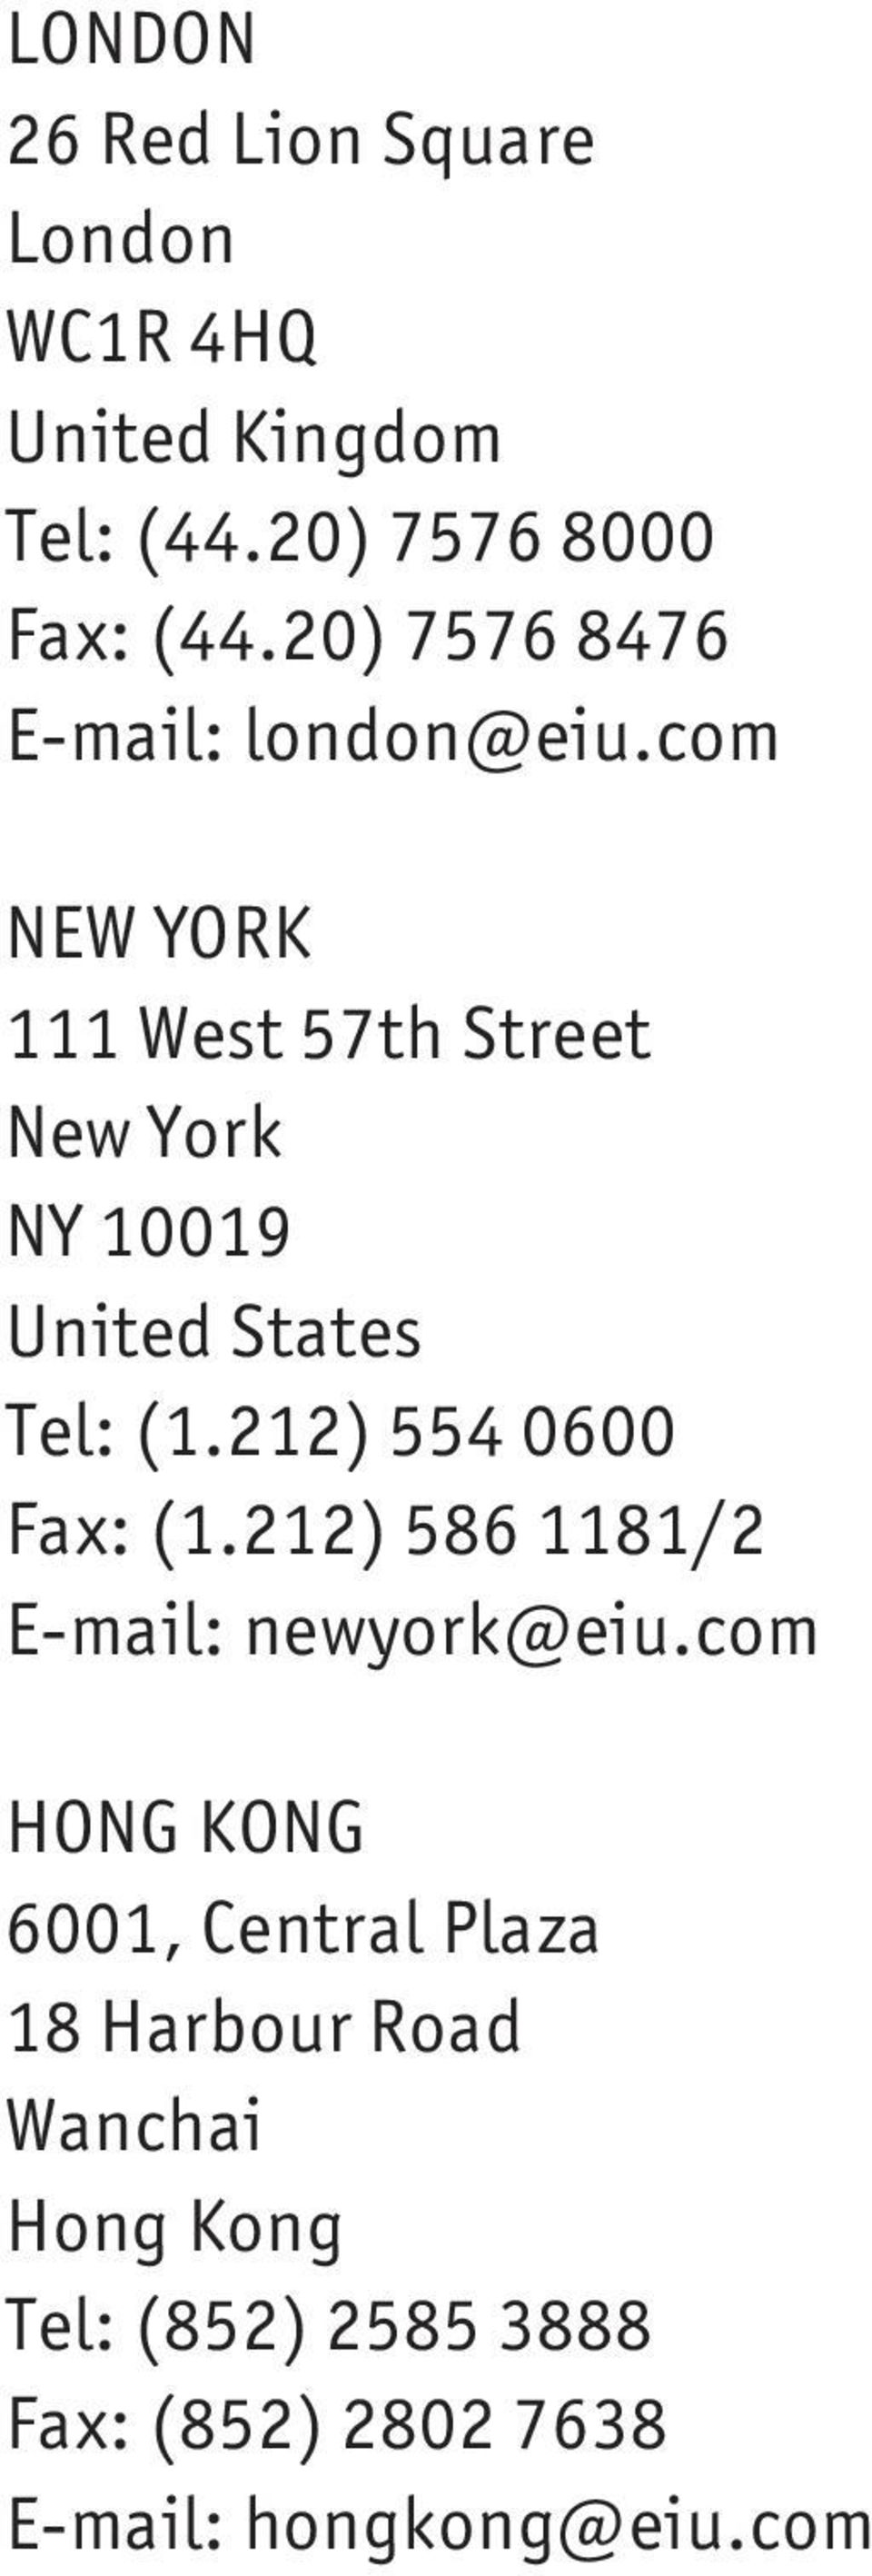 com NEW YORK 111 West 57th Street New York NY 10019 United States Tel: (1.212) 55 0600 Fax: (1.